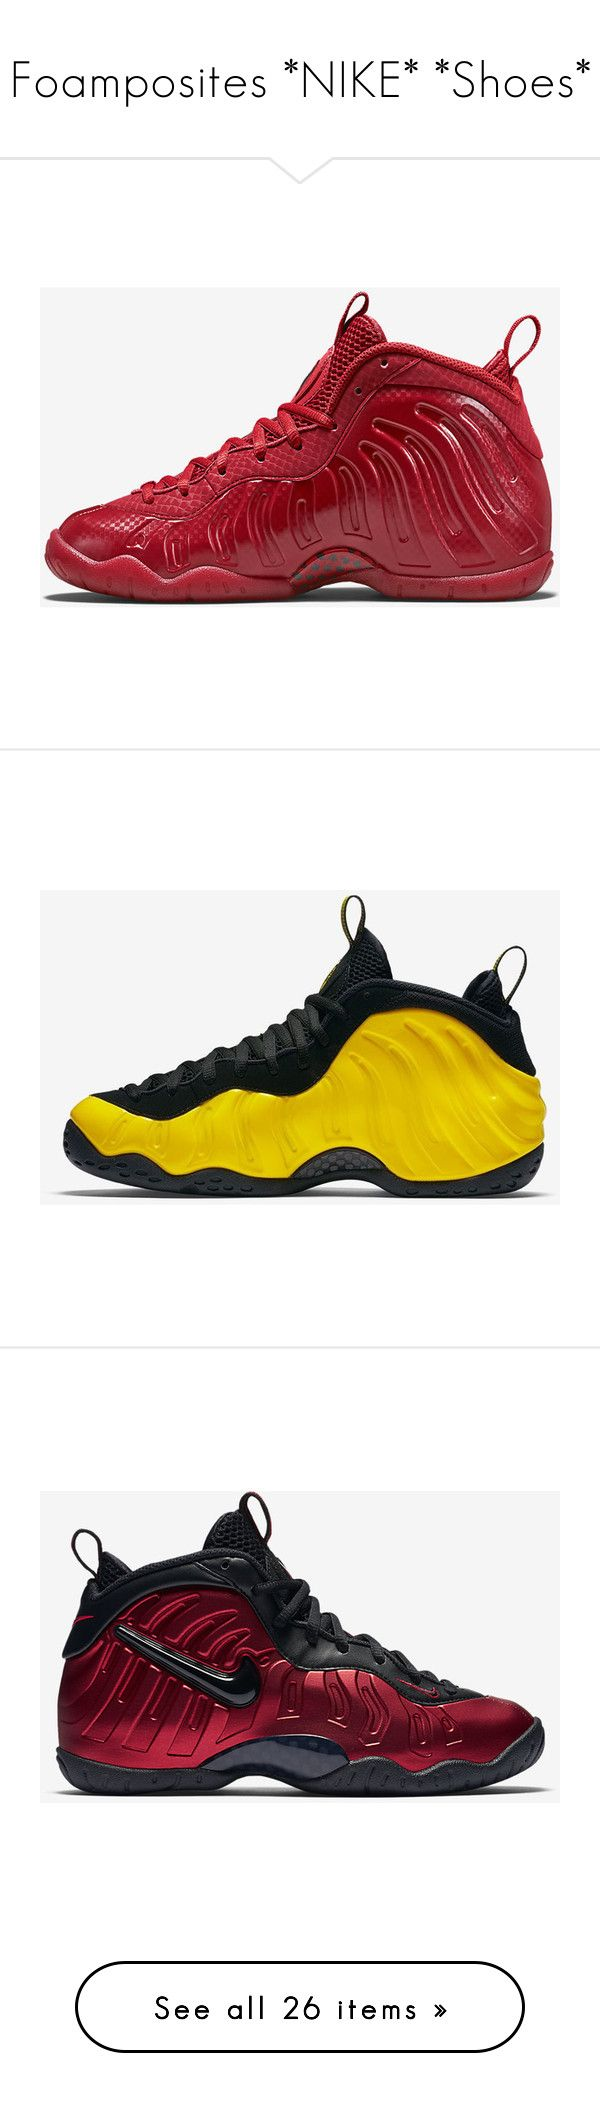 """Foamposites *NIKE* *Shoes*"" by queenswag245 ❤ liked on Polyvore featuring shoes, nike footwear, nike, nike shoes, foams, sneakers, men's fashion, jordans, foamposite and high top sneakers"